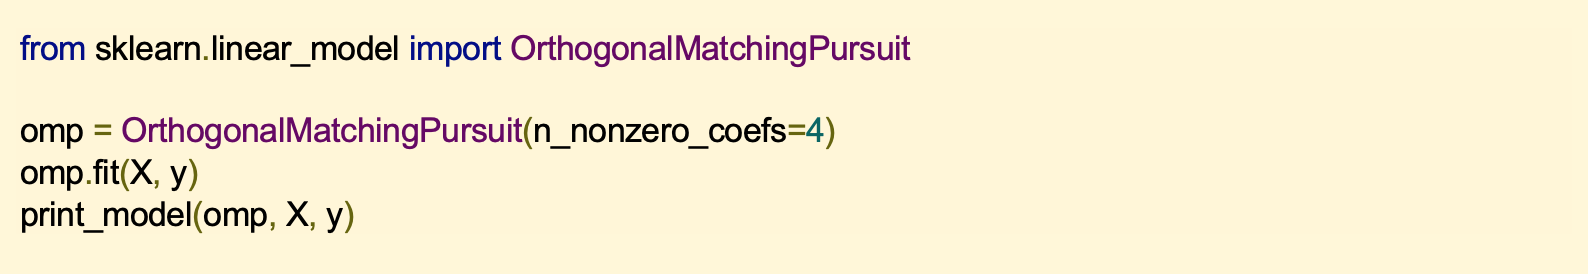 from sklearn.linear_model import OrthogonalMatchingPursuit omp = OrthogonalMatchingPursuit(n_nonzero_coefs=4) omp.fit(X, y) print_model(omp, X, y)